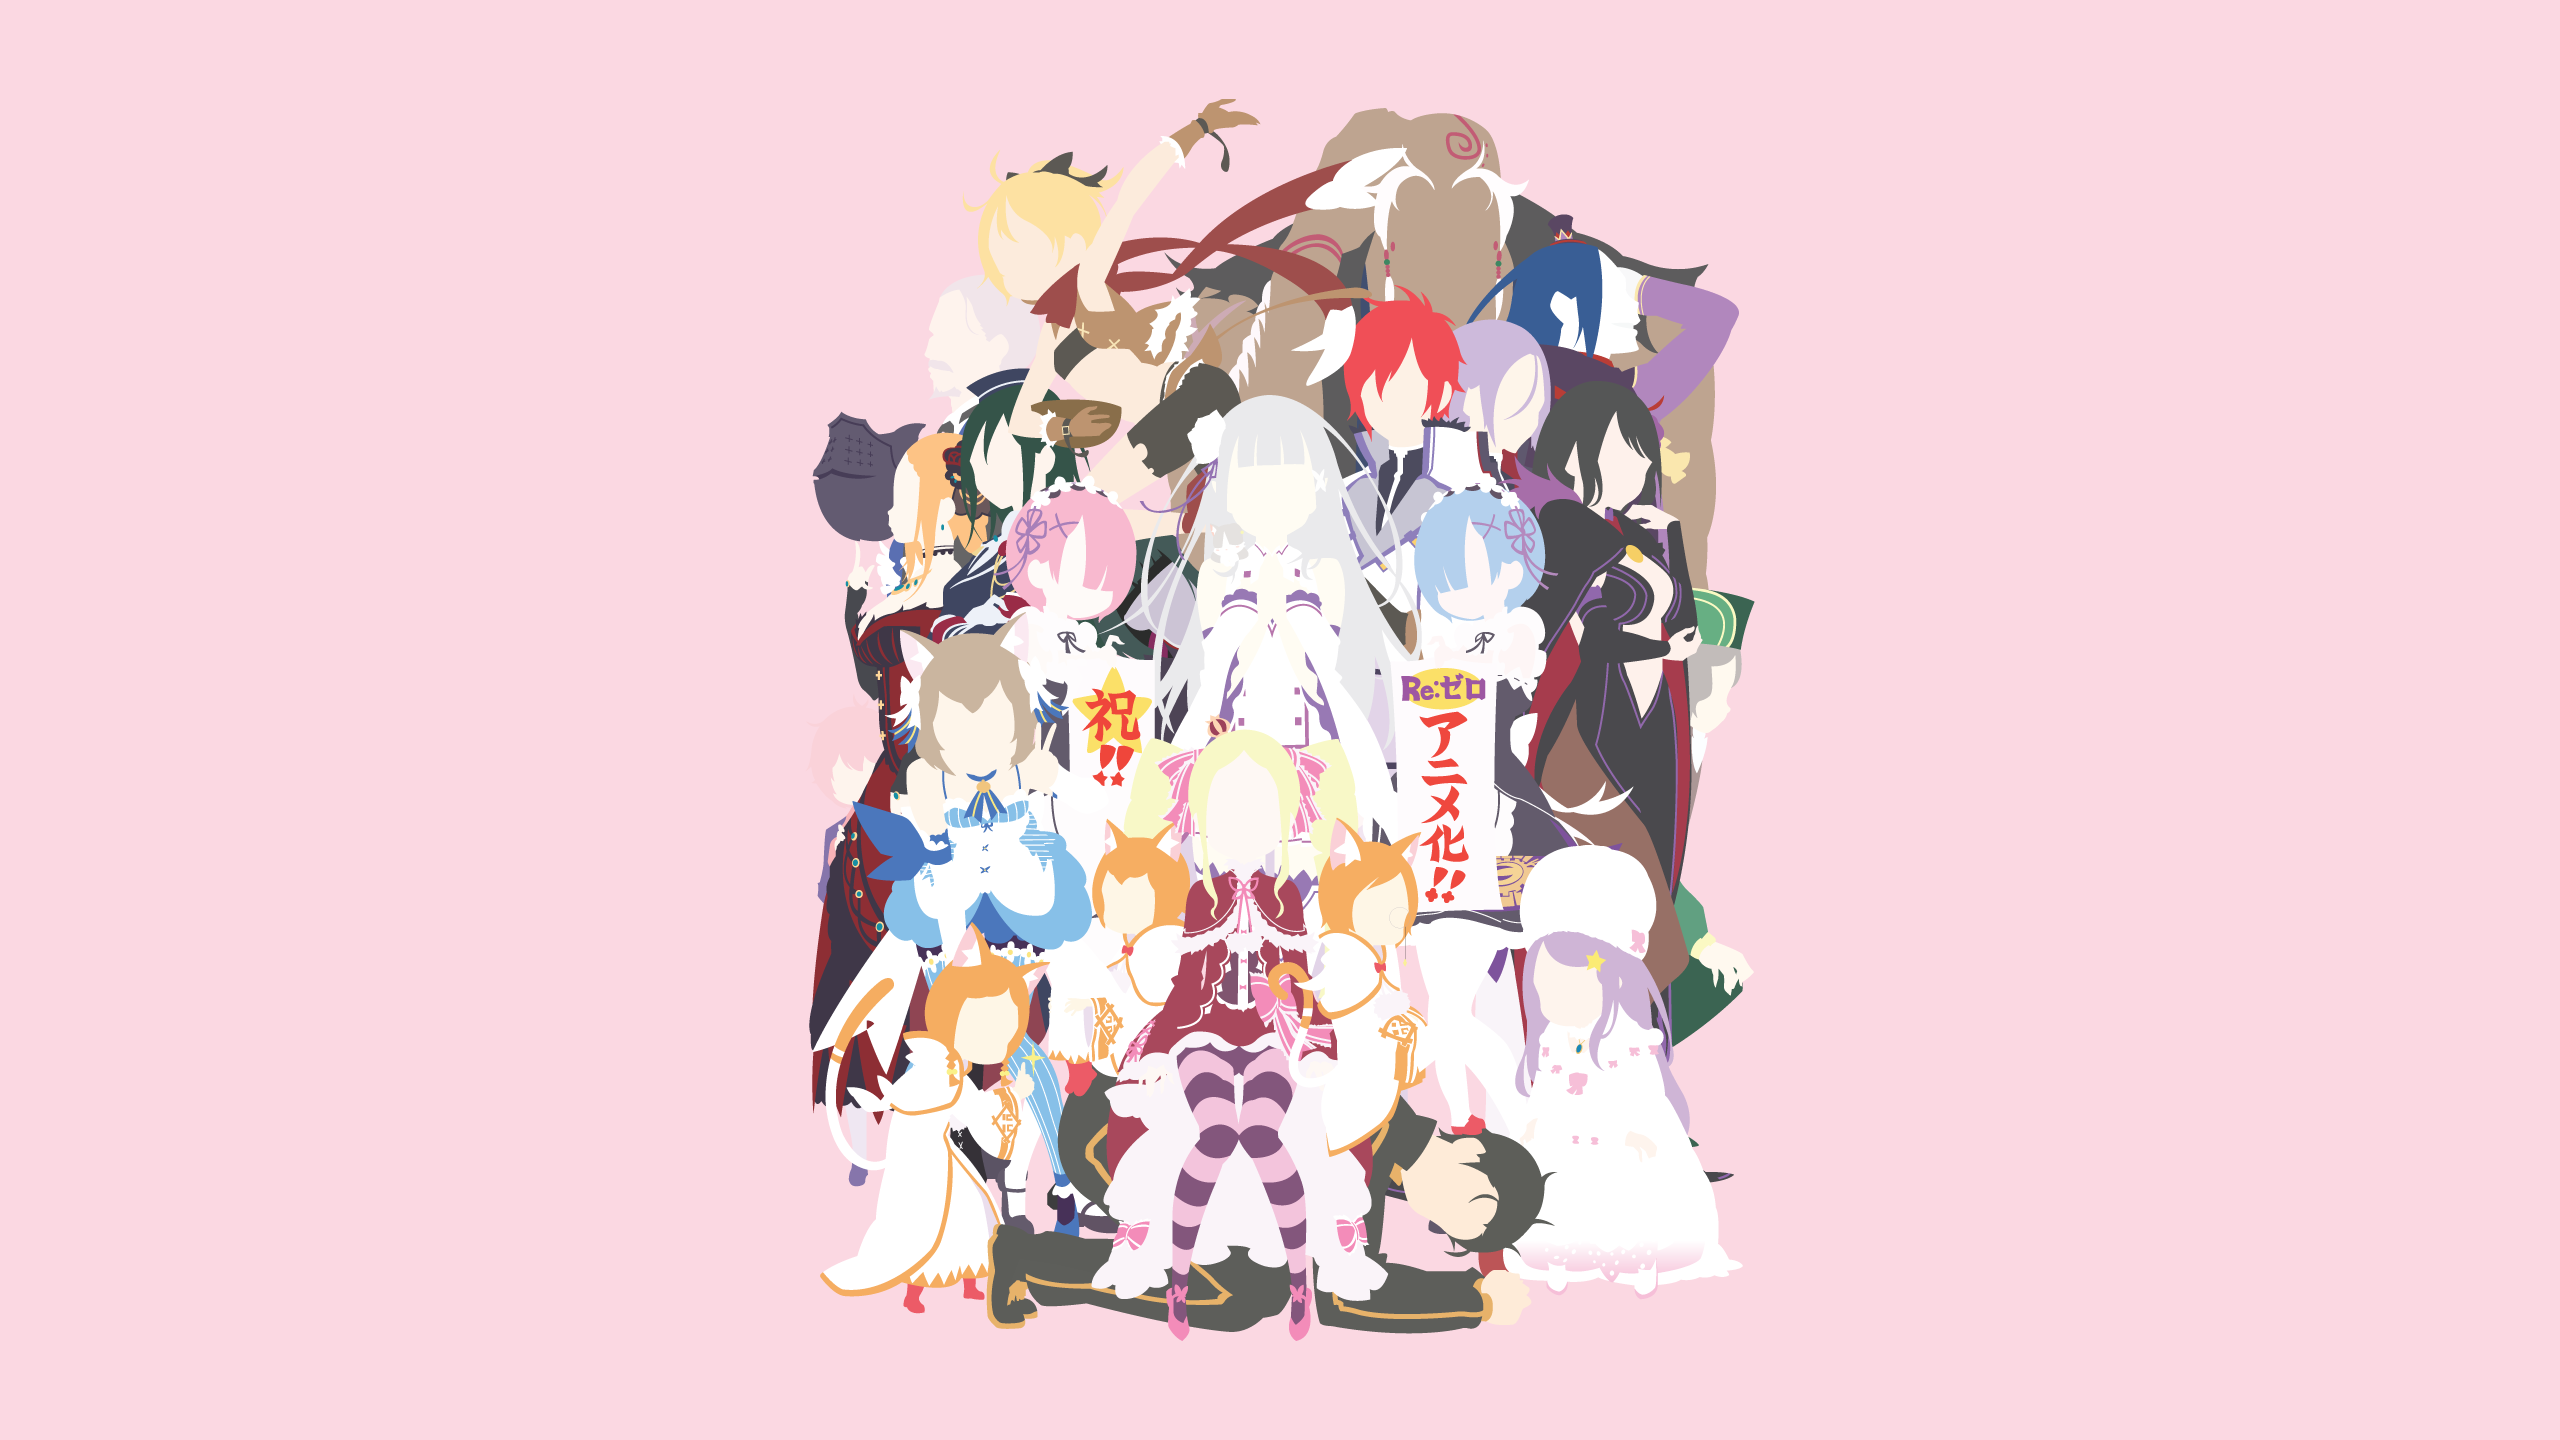 Character wallpaper re zero minimalistic by ancors on for Re zero wallpaper